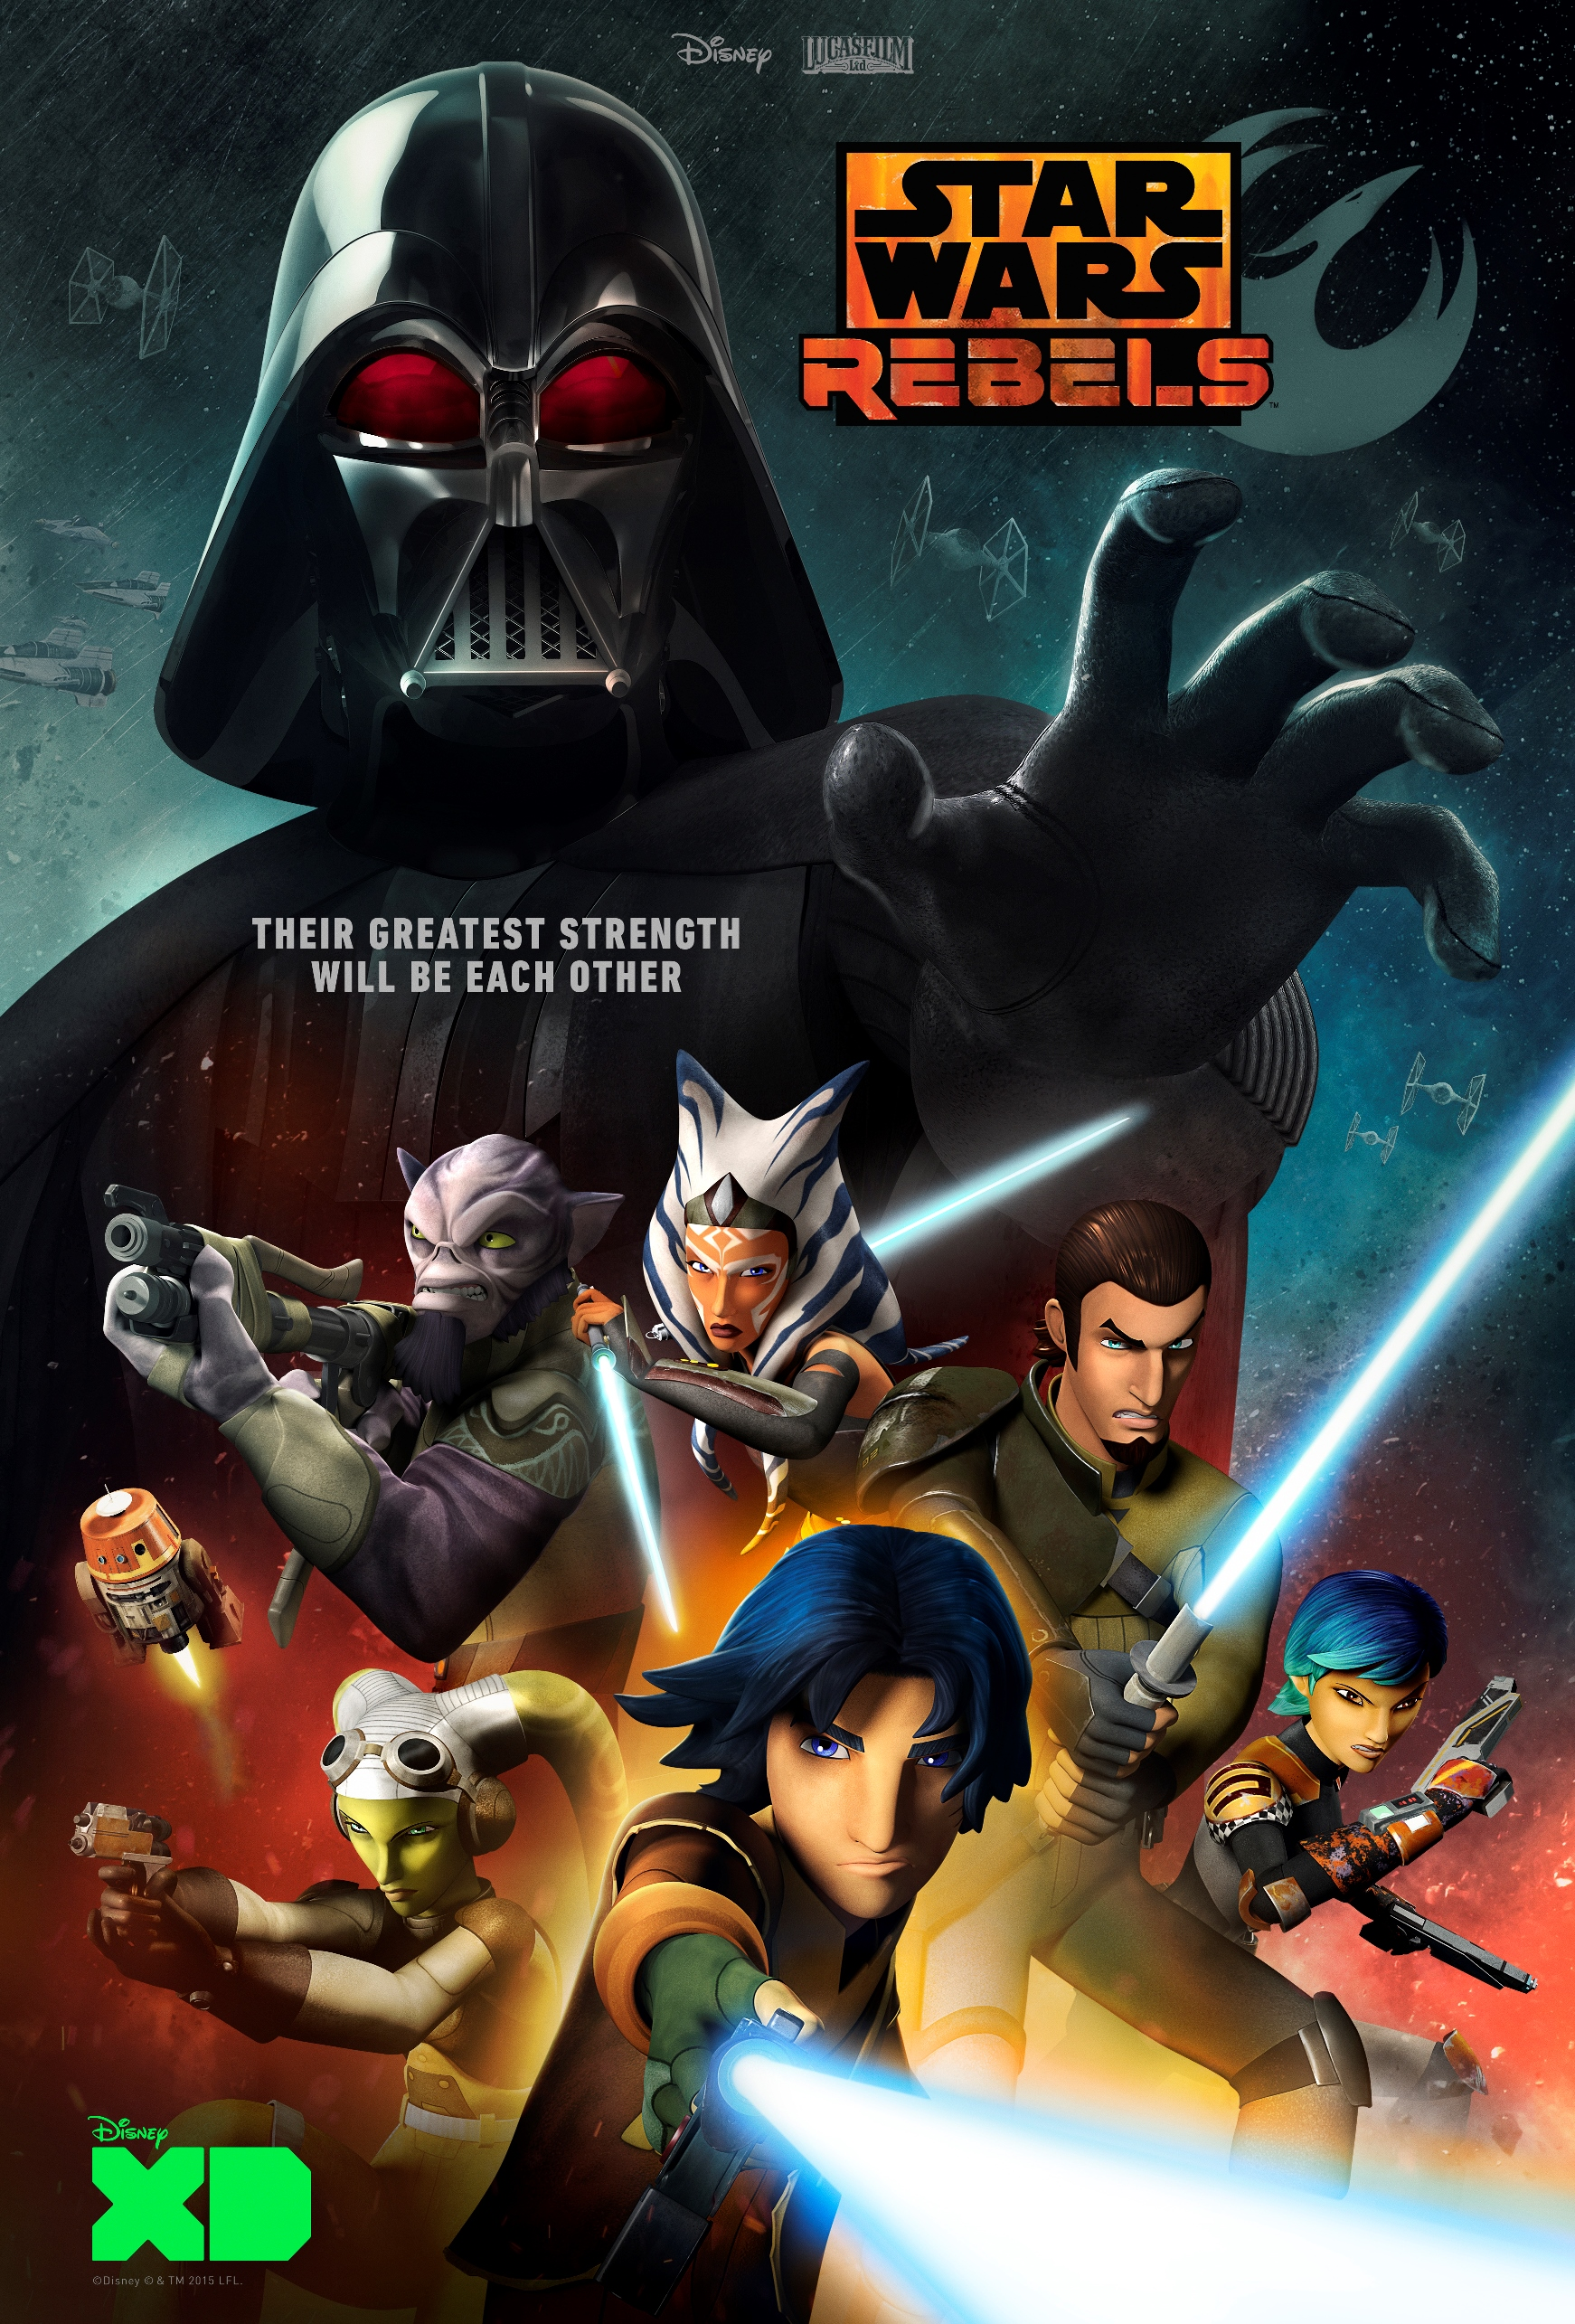 Seven Ways to Get Hyped for The Force Awakens Star Wars Rebels Darth Vader Clone Wars Animated Show Ahsoka Disney TV